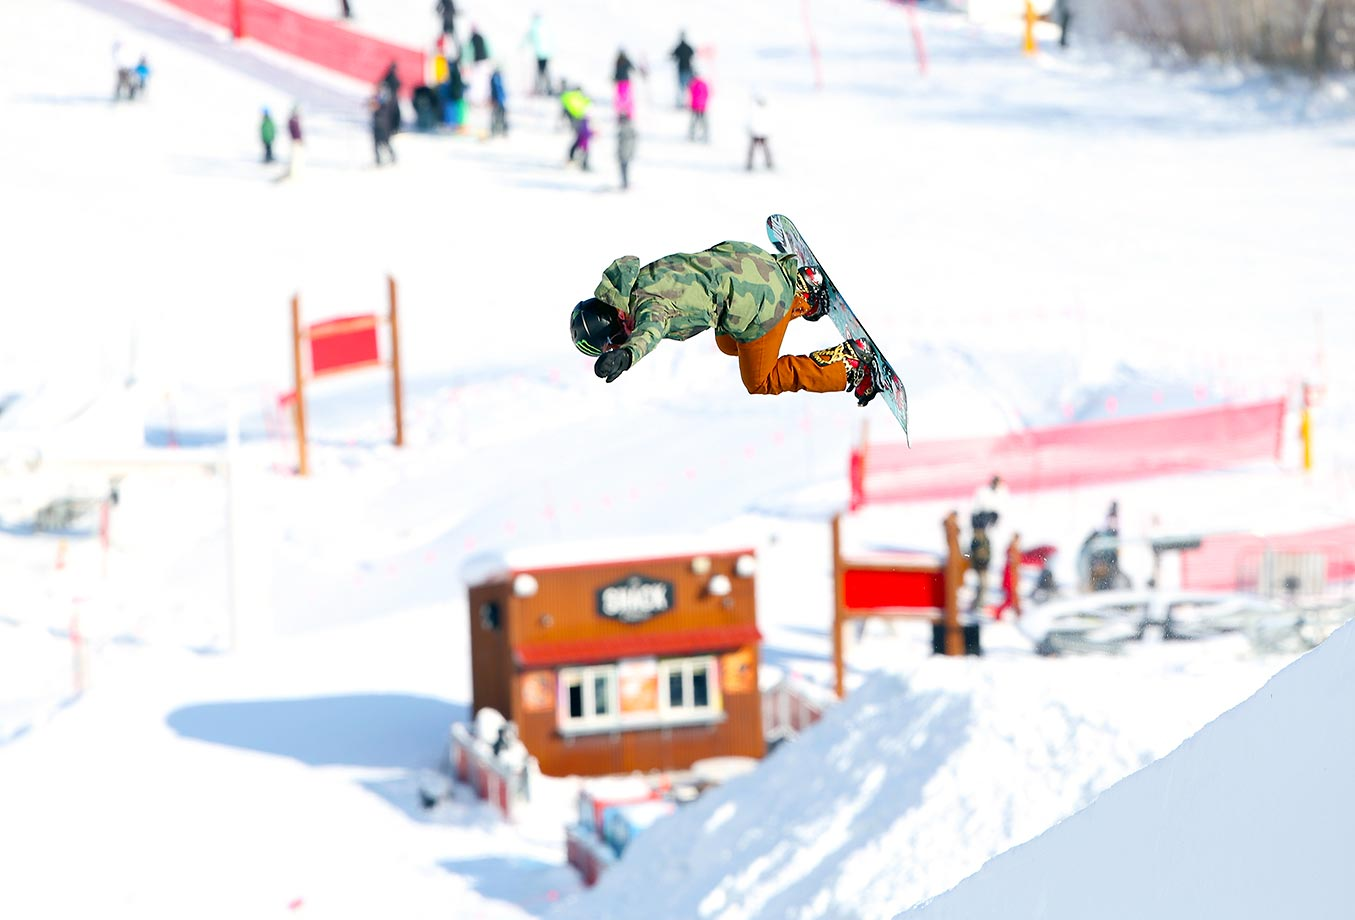 Snowboarder Chloe Kim is nonstop action during practice runs at Park City.